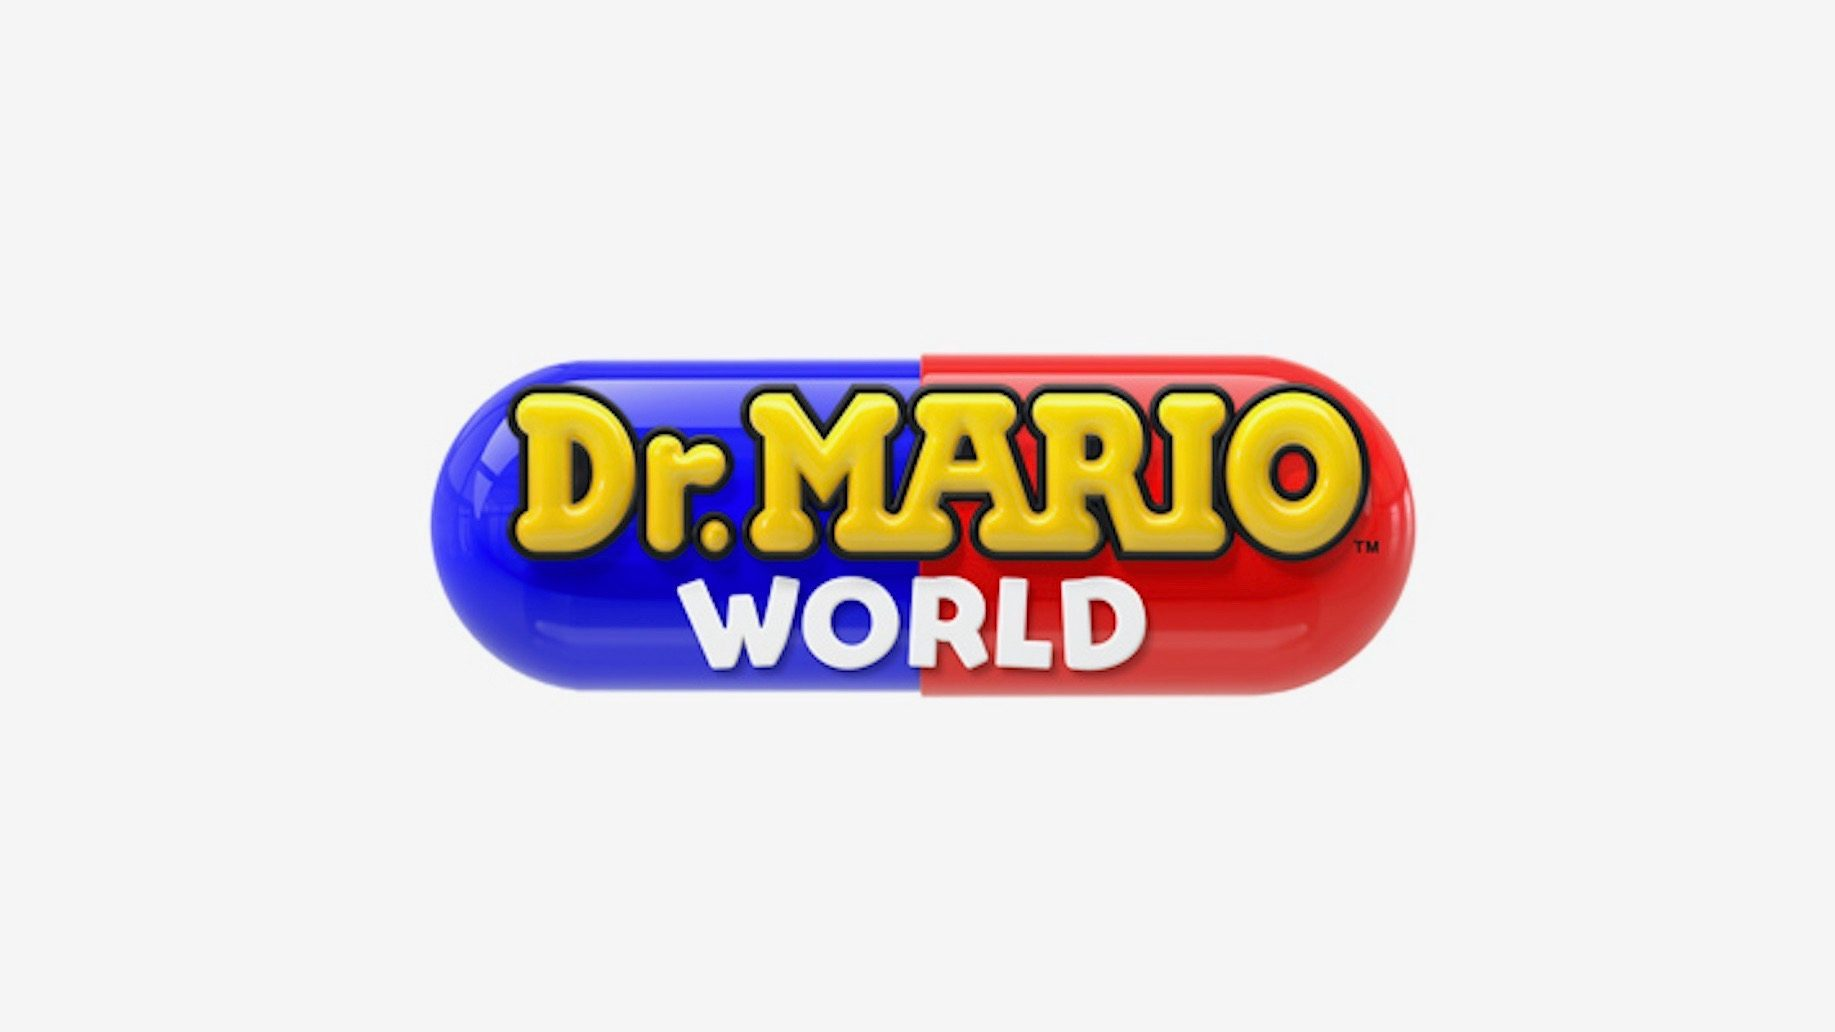 Nintendo announces new 'Dr. Mario World' game coming to iOS and Android this summer